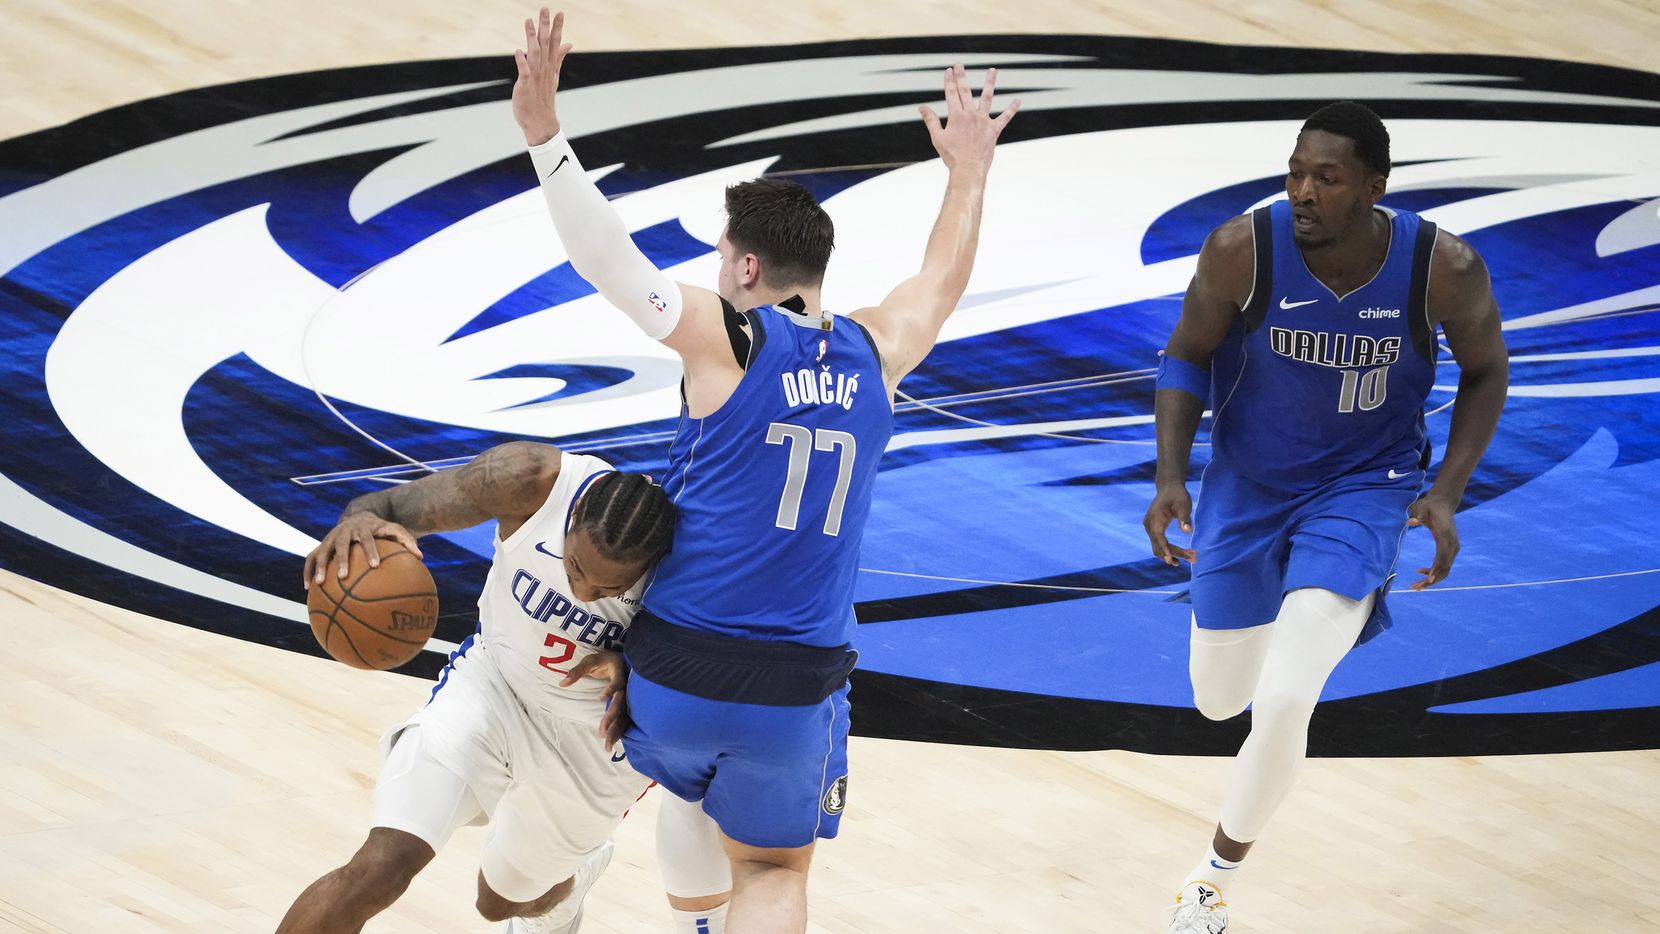 LA Clippers forward Kawhi Leonard (2) drives past Dallas Mavericks guard Luka Doncic (77) during the fourth quarter of an NBA playoff basketball game at the American Airlines Center on Friday, June 4, 2021, in Dallas. The Clippers won the game 104-97.